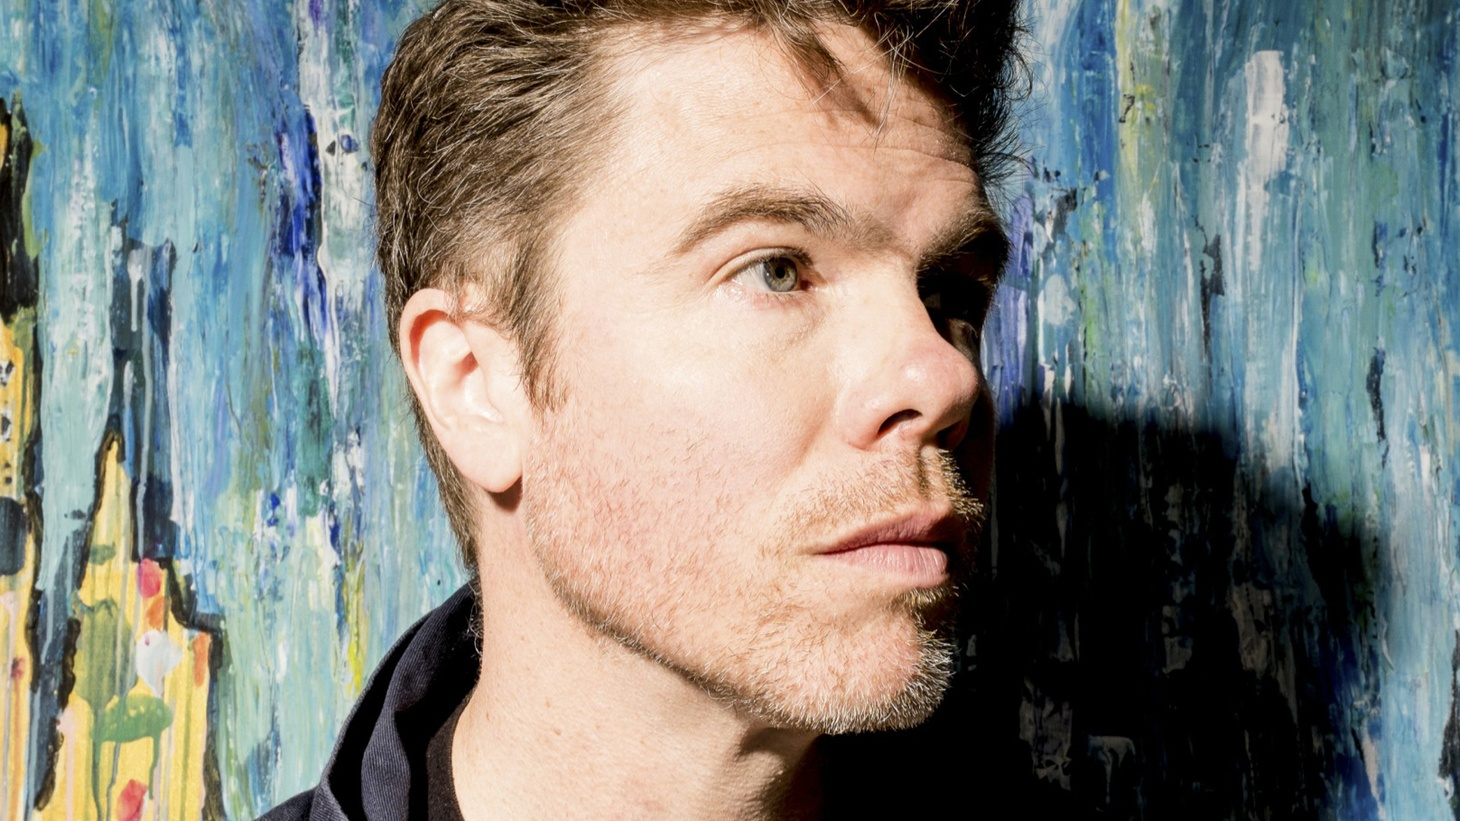 """As its title suggests, Sermon On The Rocks is Josh Ritter's foray into what the singer himself calls """"messianic oracular honky-tonk,"""" often dispensed via a kind of traveling-preacher/snake-oil-salesman persona. Which means, in turn, that Sermon On The Rocks is lighter than usual on the sincere rumination that has marked many of its predecessors."""